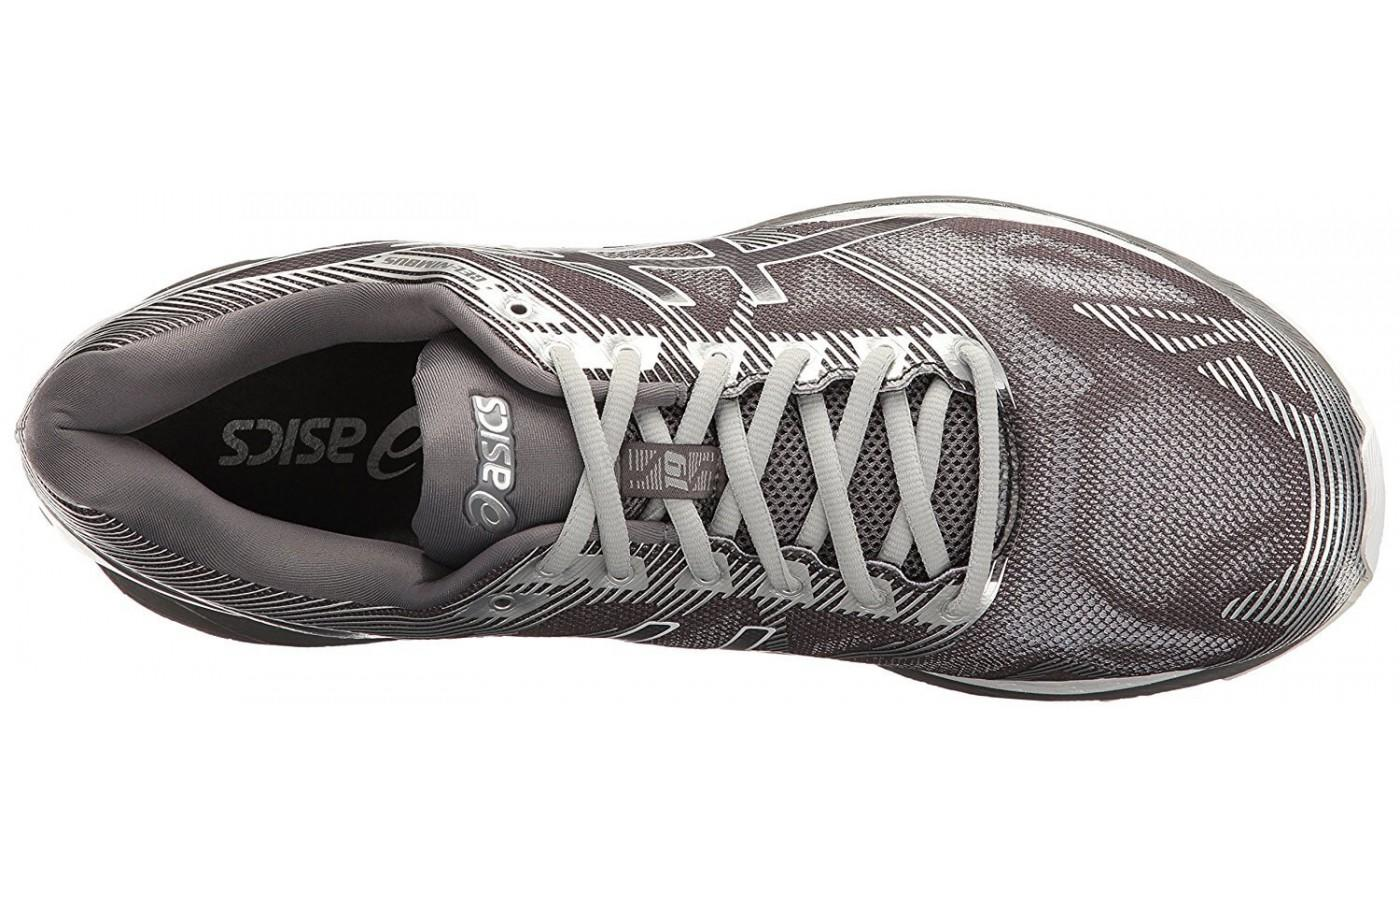 0c09e174b9fc9 The updated upper of the ASICS Gel Nimbus 19 gives runners a glove-like fit  ...